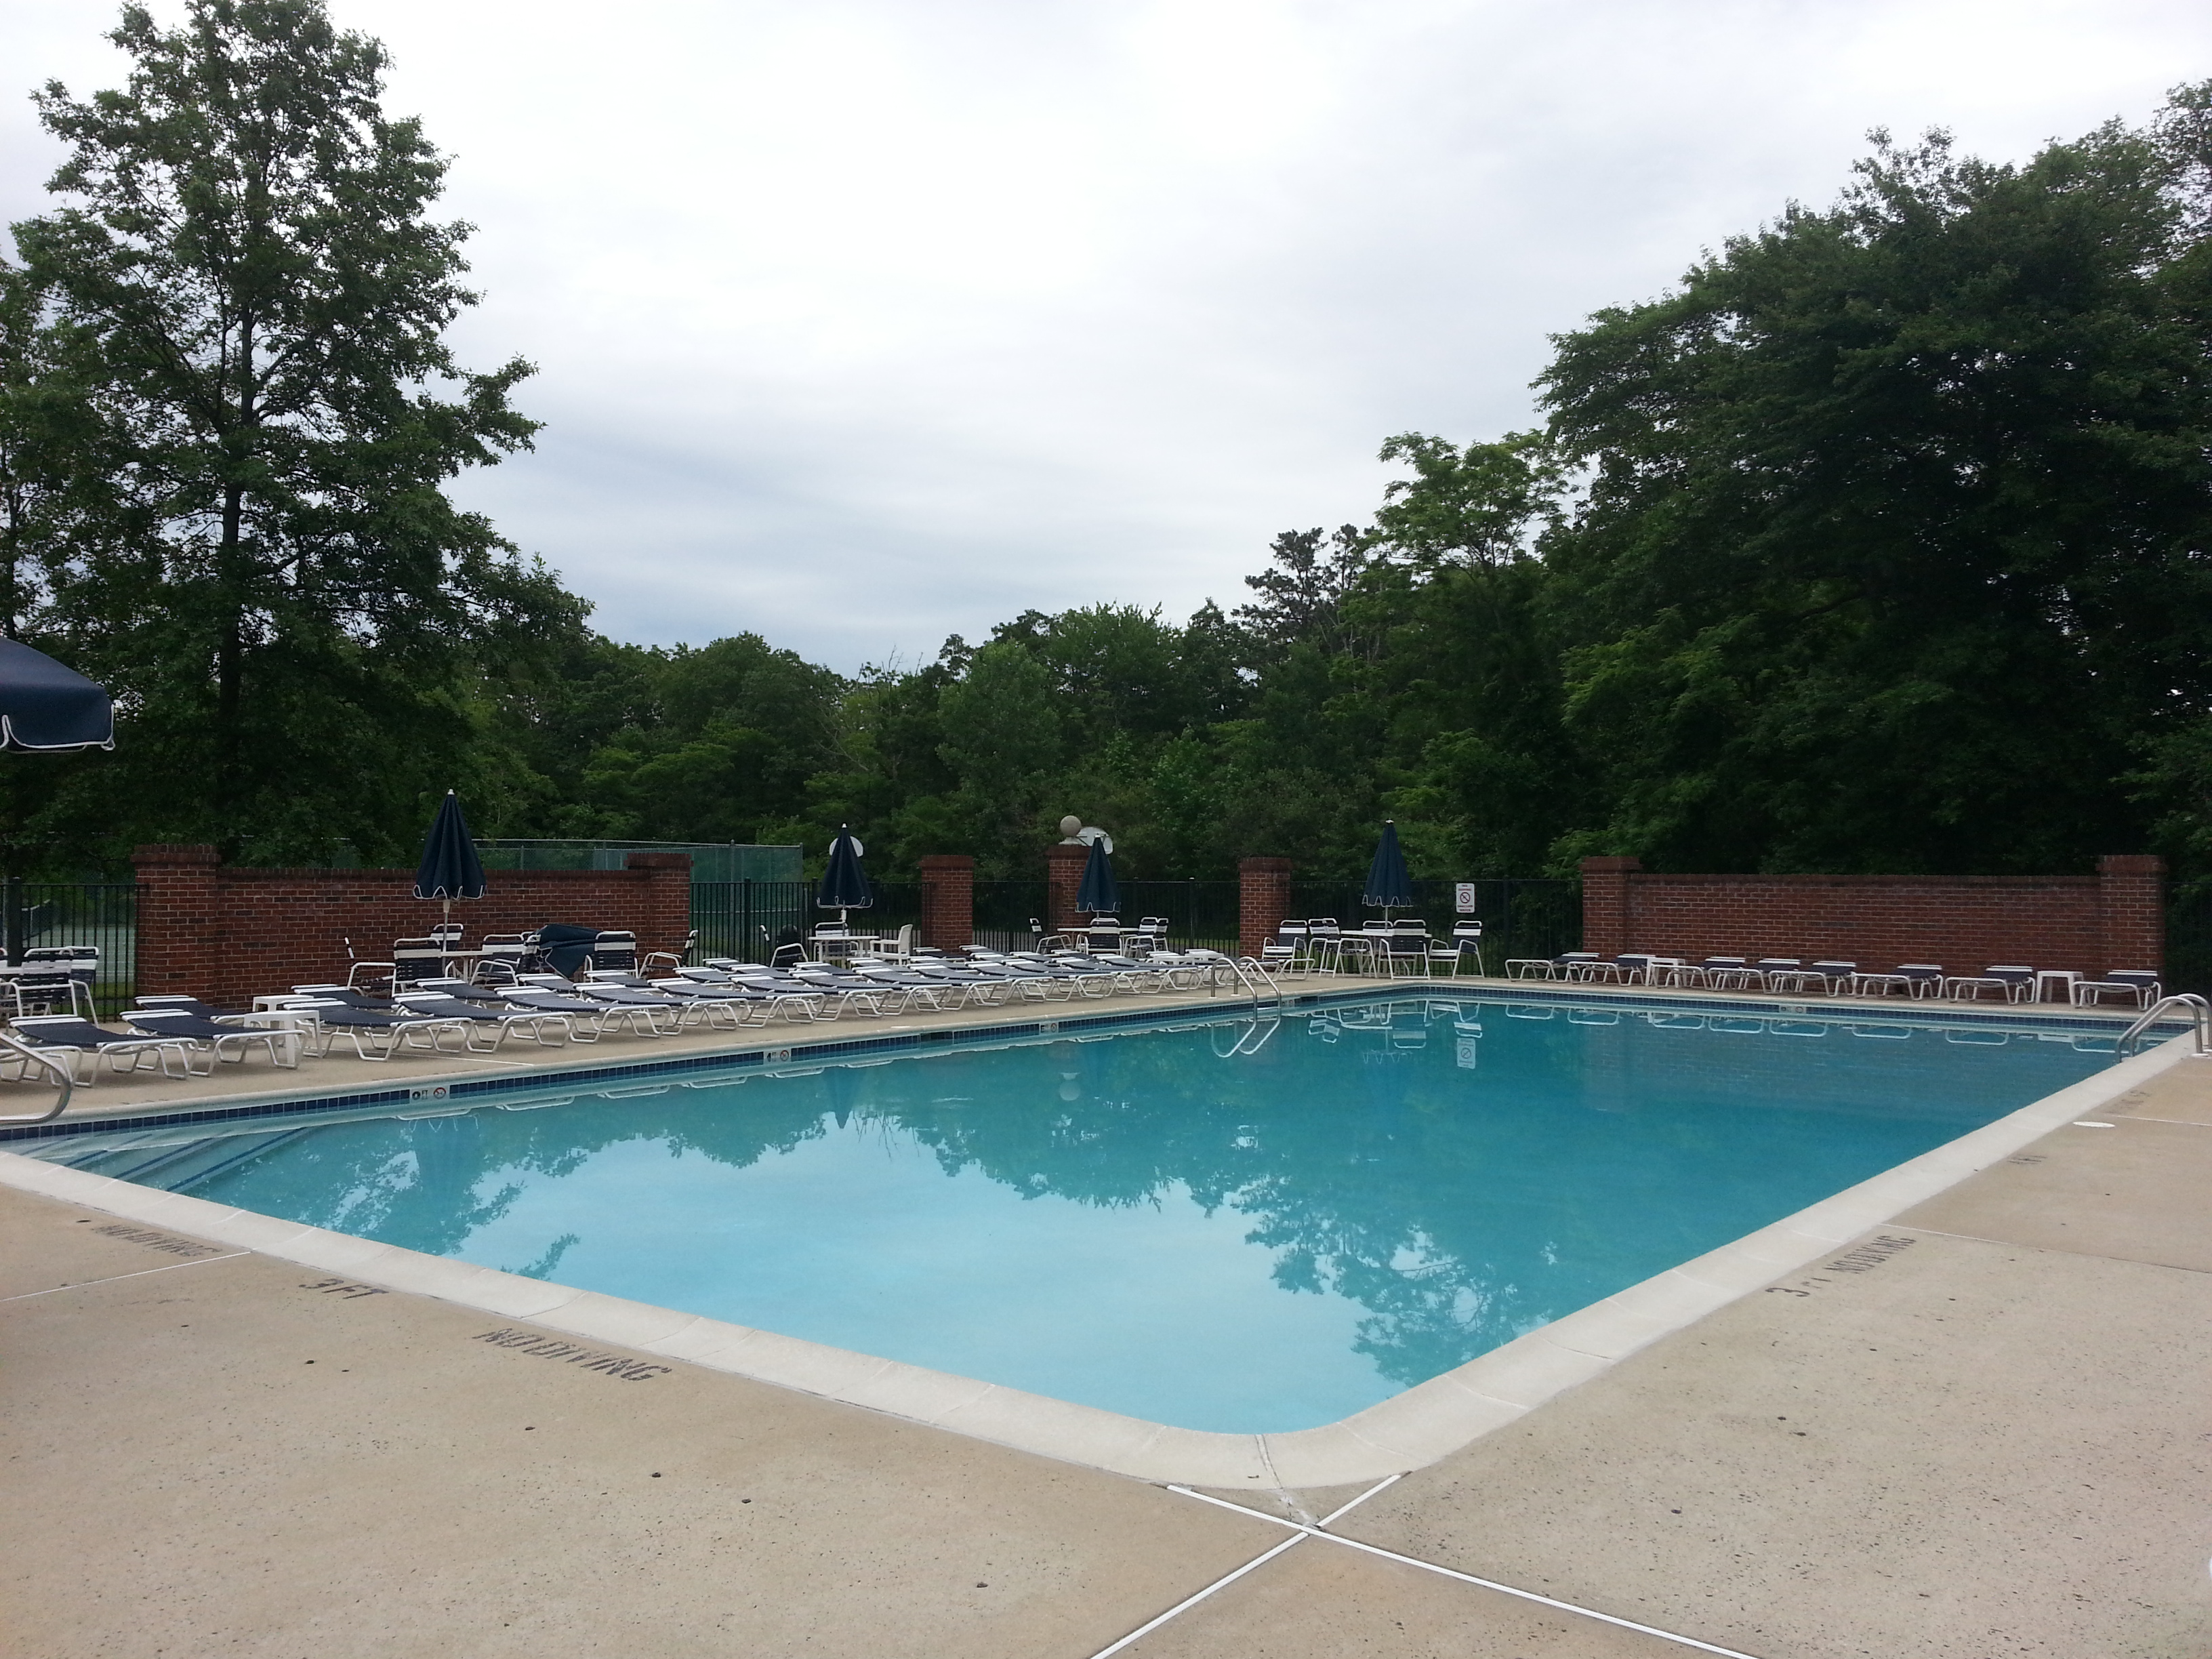 Hidden Meadows has a large pool and plenty of lounge chairs for everyone.